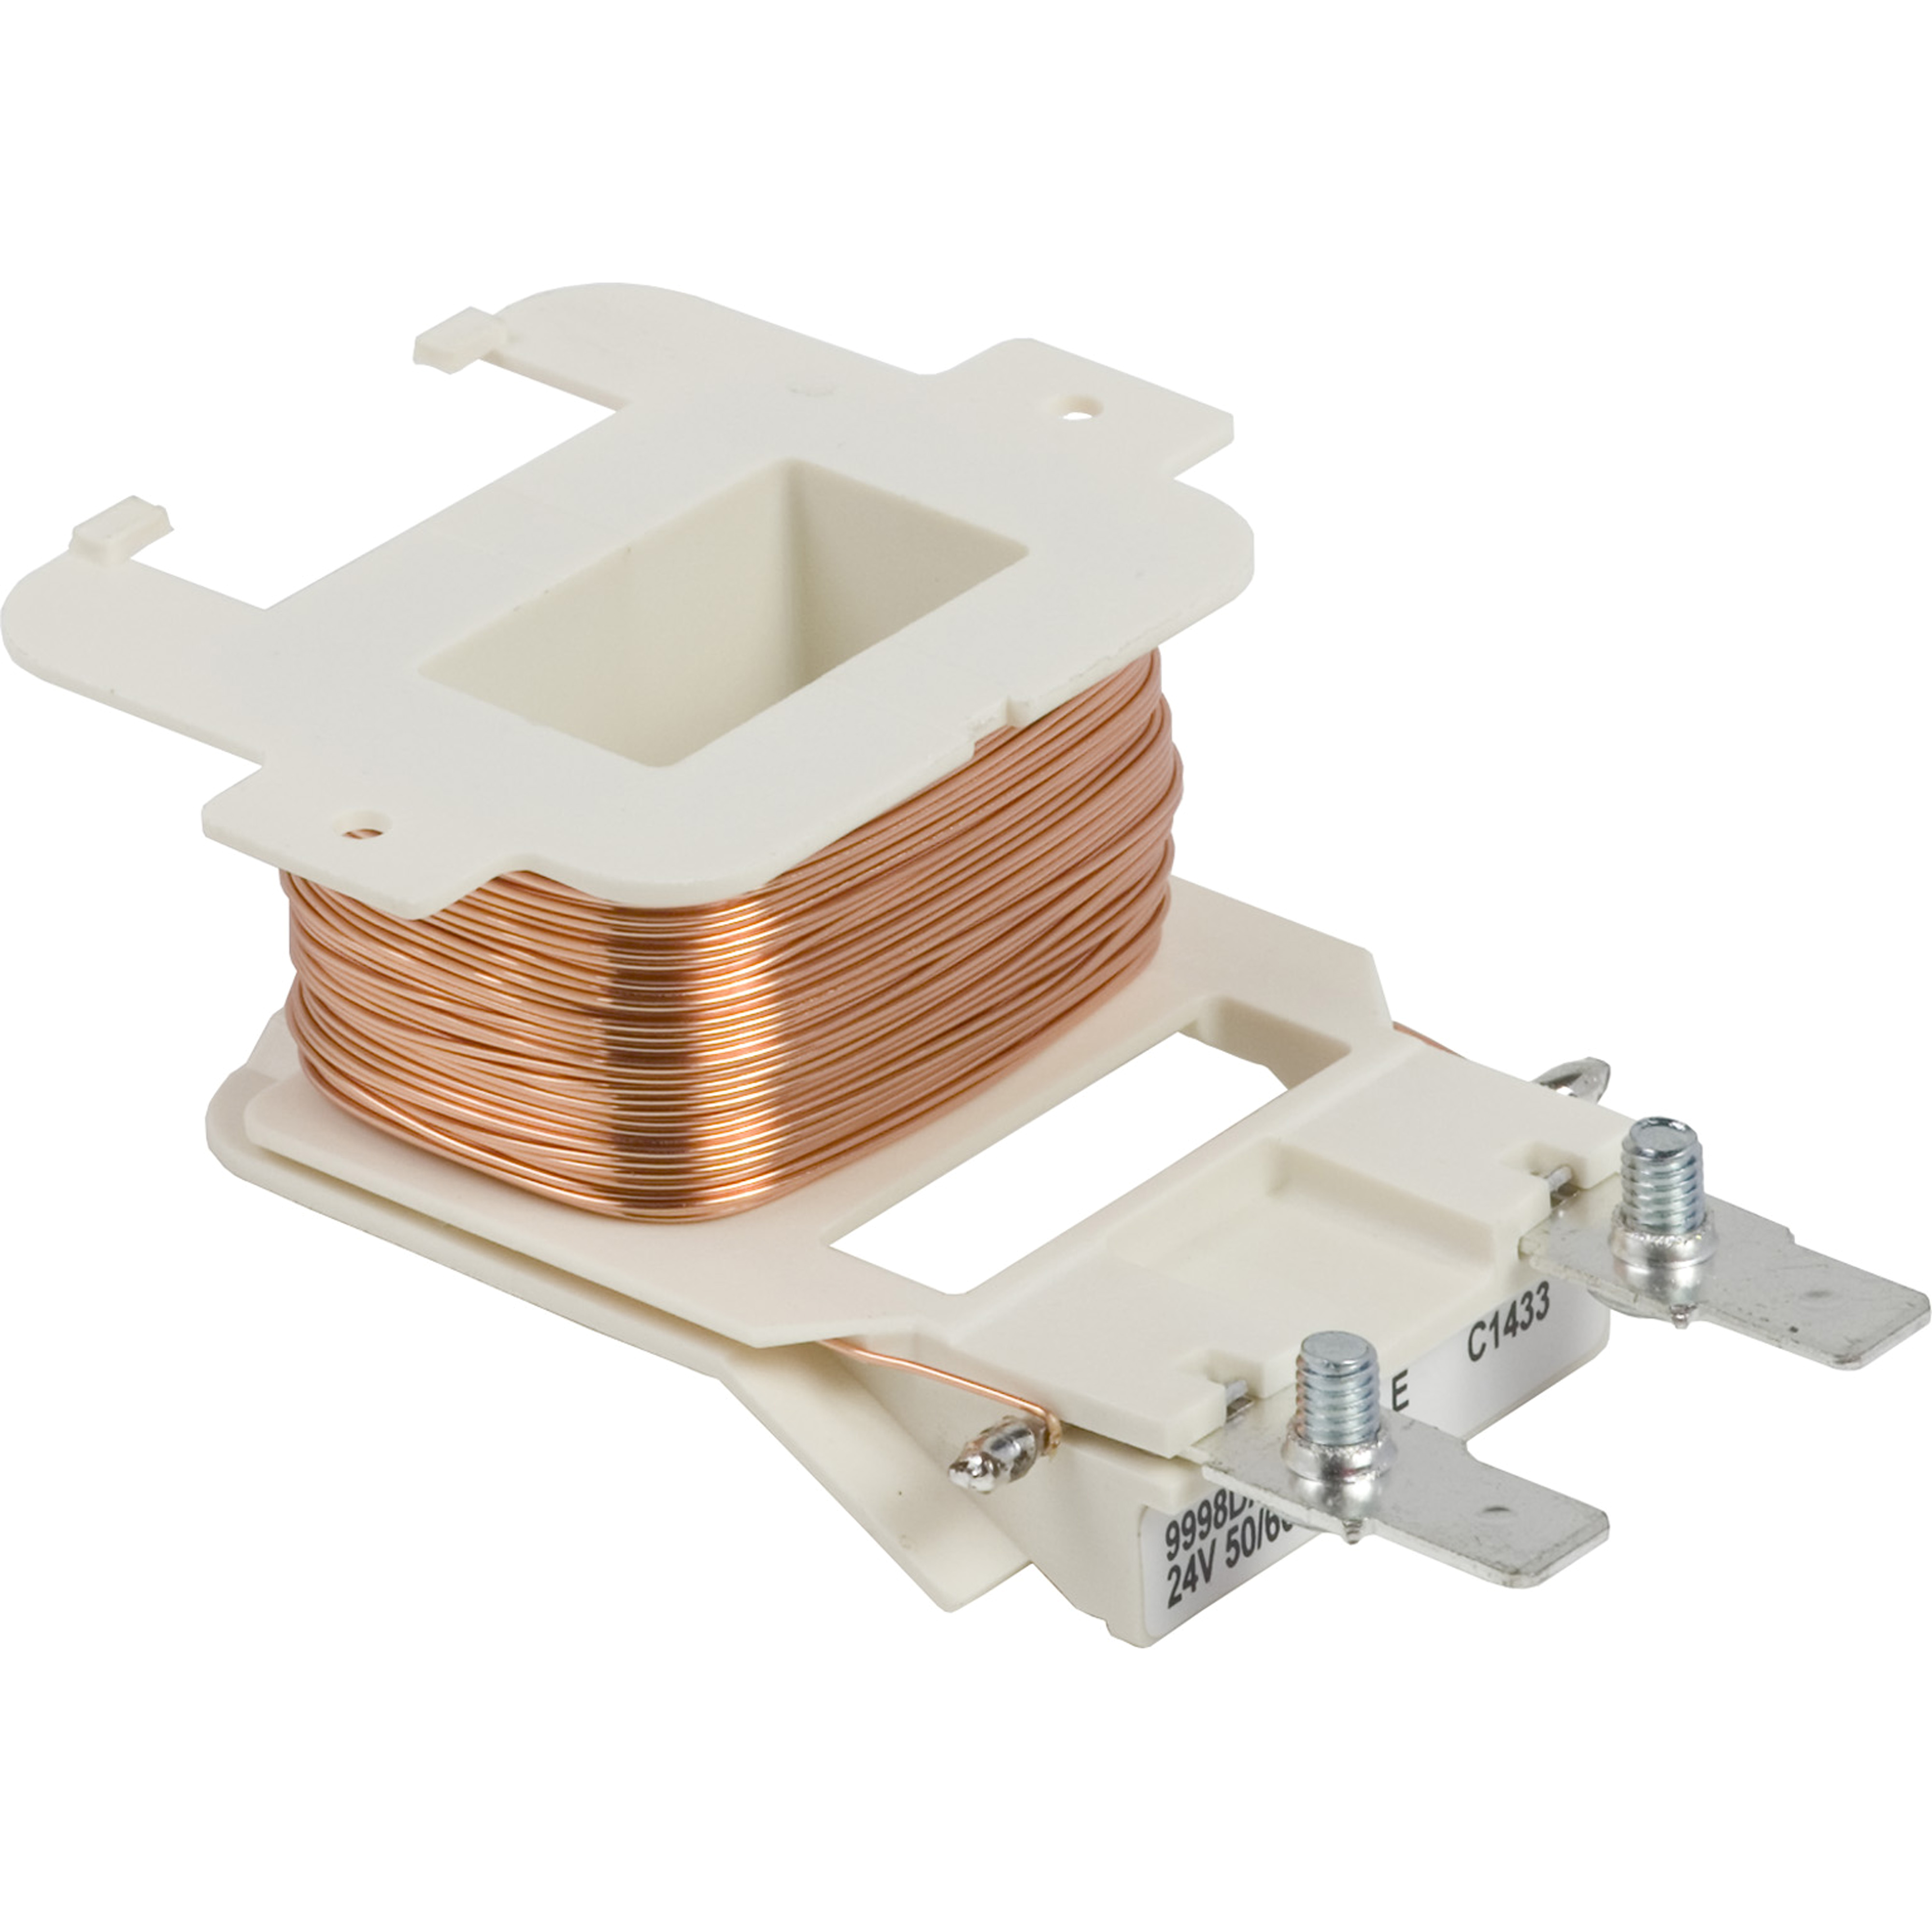 SQUARE D Contactor, Definite Purpose, replacement coil, 24/24 VAC 50/60 Hz, for 8910DPA 50A and 60A contactors, 2 and 3 poles